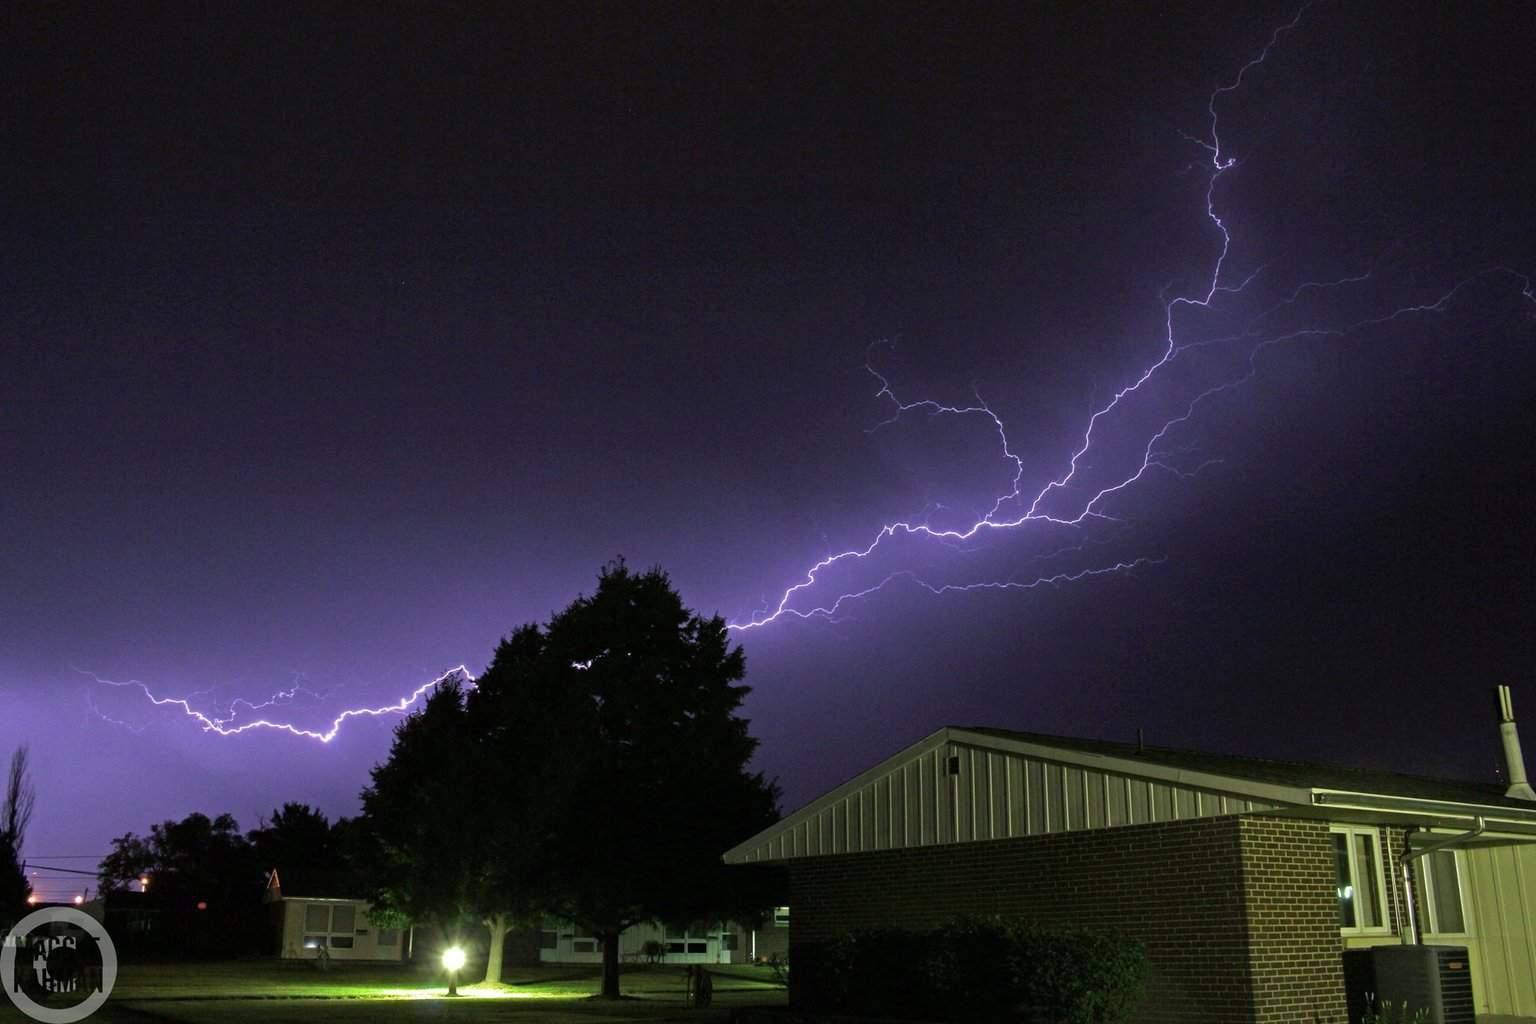 I took this VERY early yesterday morning (7/11) around 3am. Nothing was severe, but had quite a display for a little while. Taken in Kearney, NE. Not sure what to call this, anyone have any suggestions?